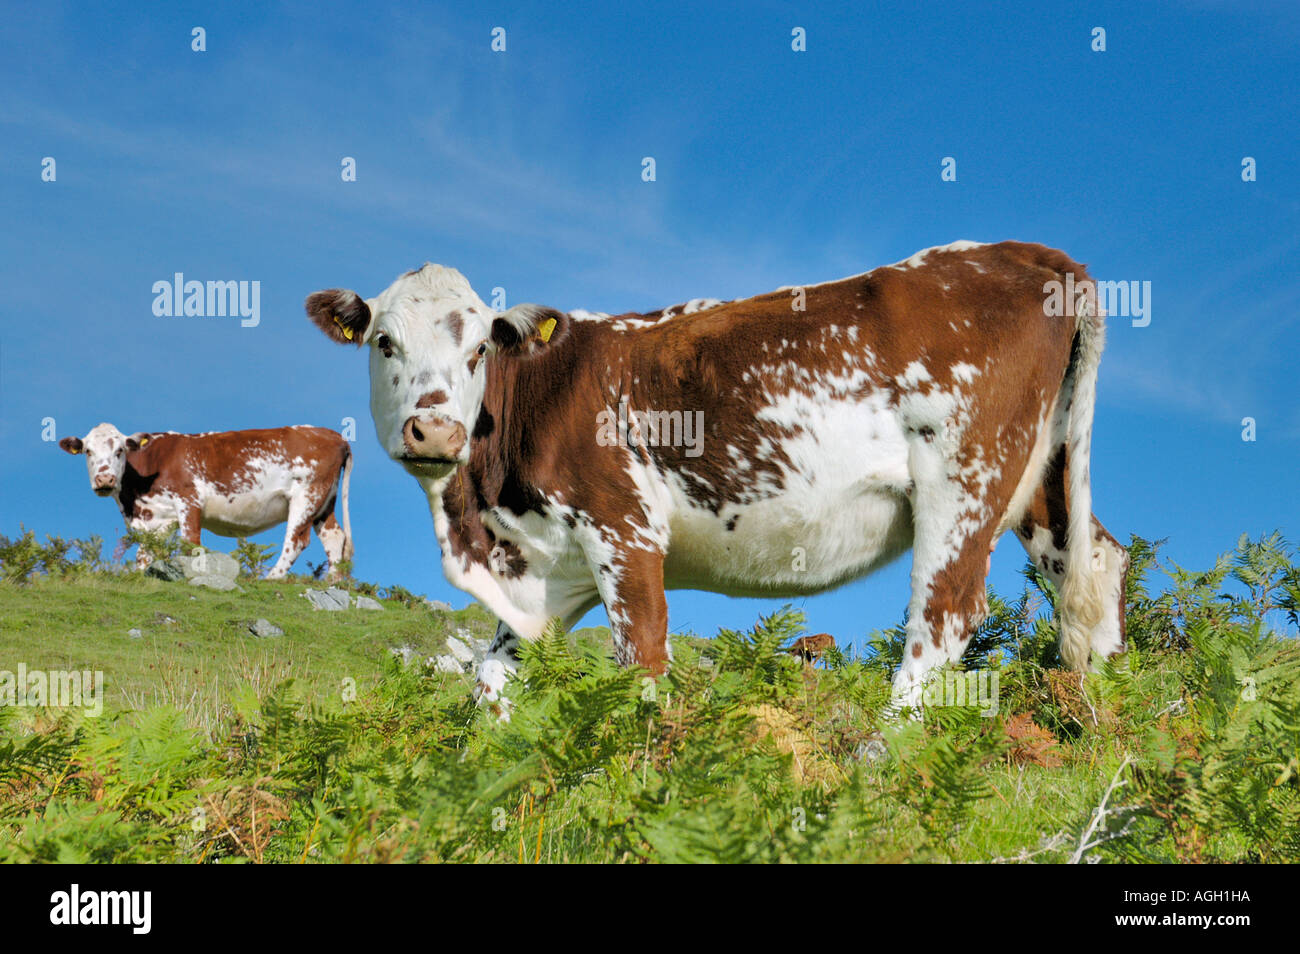 Identical and cloned cows on pasture, Isle of Skye, Scotland - Stock Image